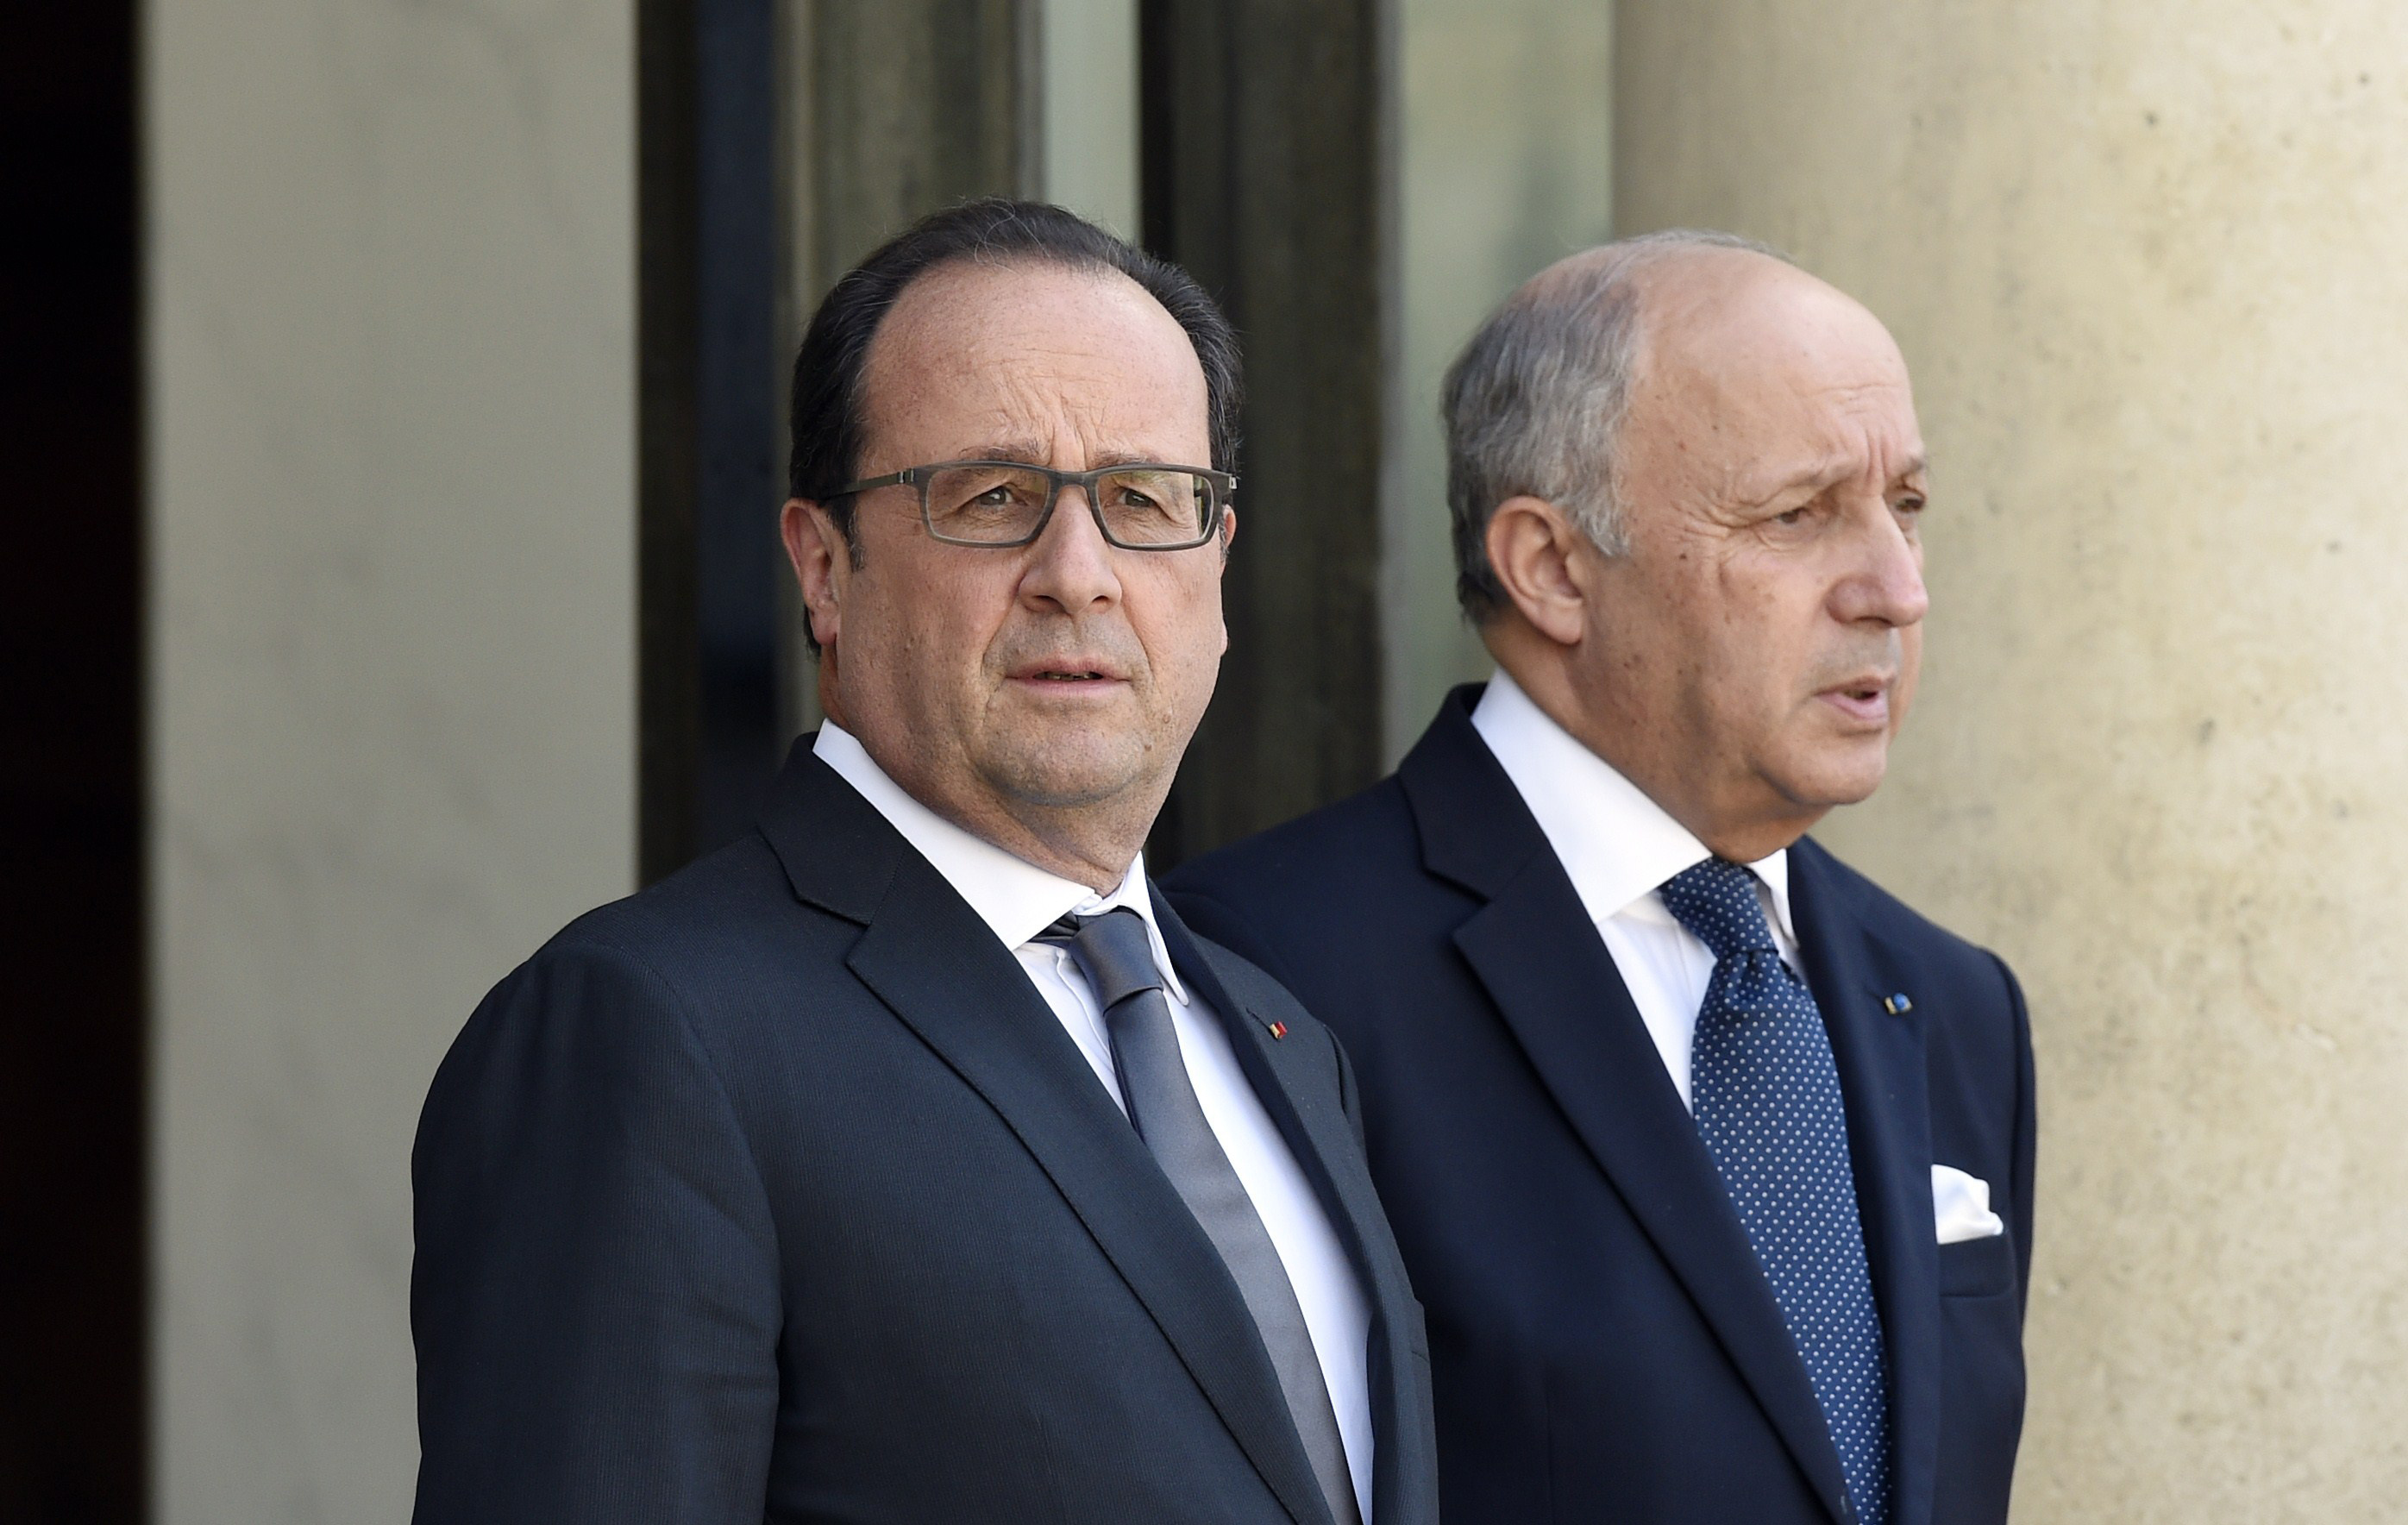 French President Francois Hollande, left, and French Foreign Affairs Minister Laurent Fabius wait for the Saudi Defense Minister at the Elysee Palace in Paris, June 24, 2015.